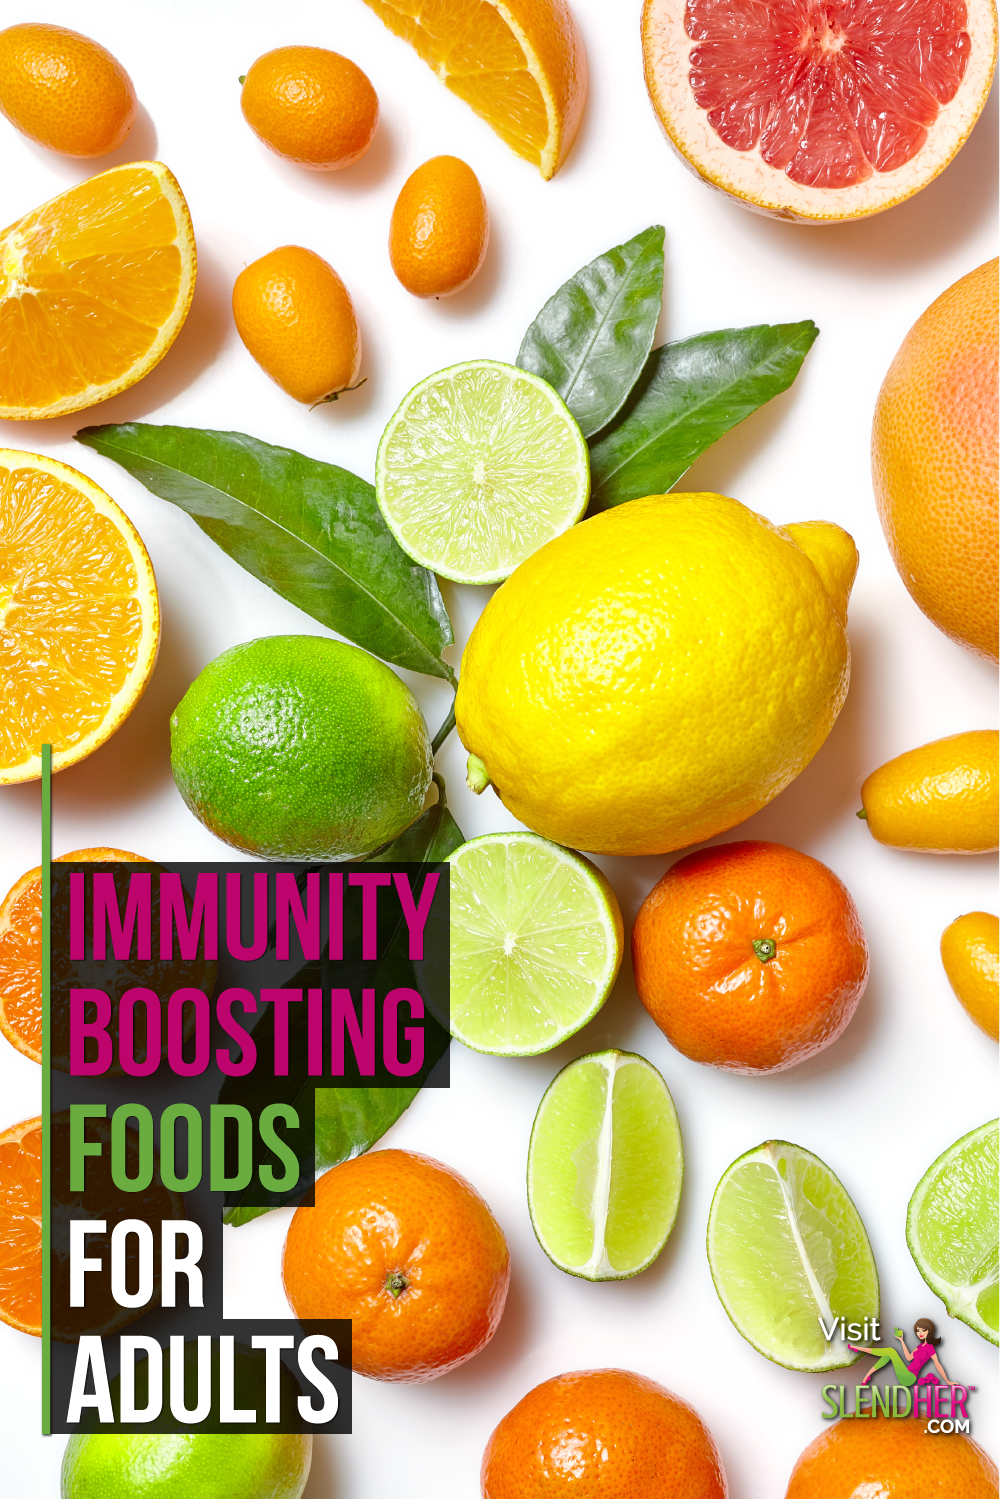 ImmunityBoosting Foods for Adults in 2020 Immune